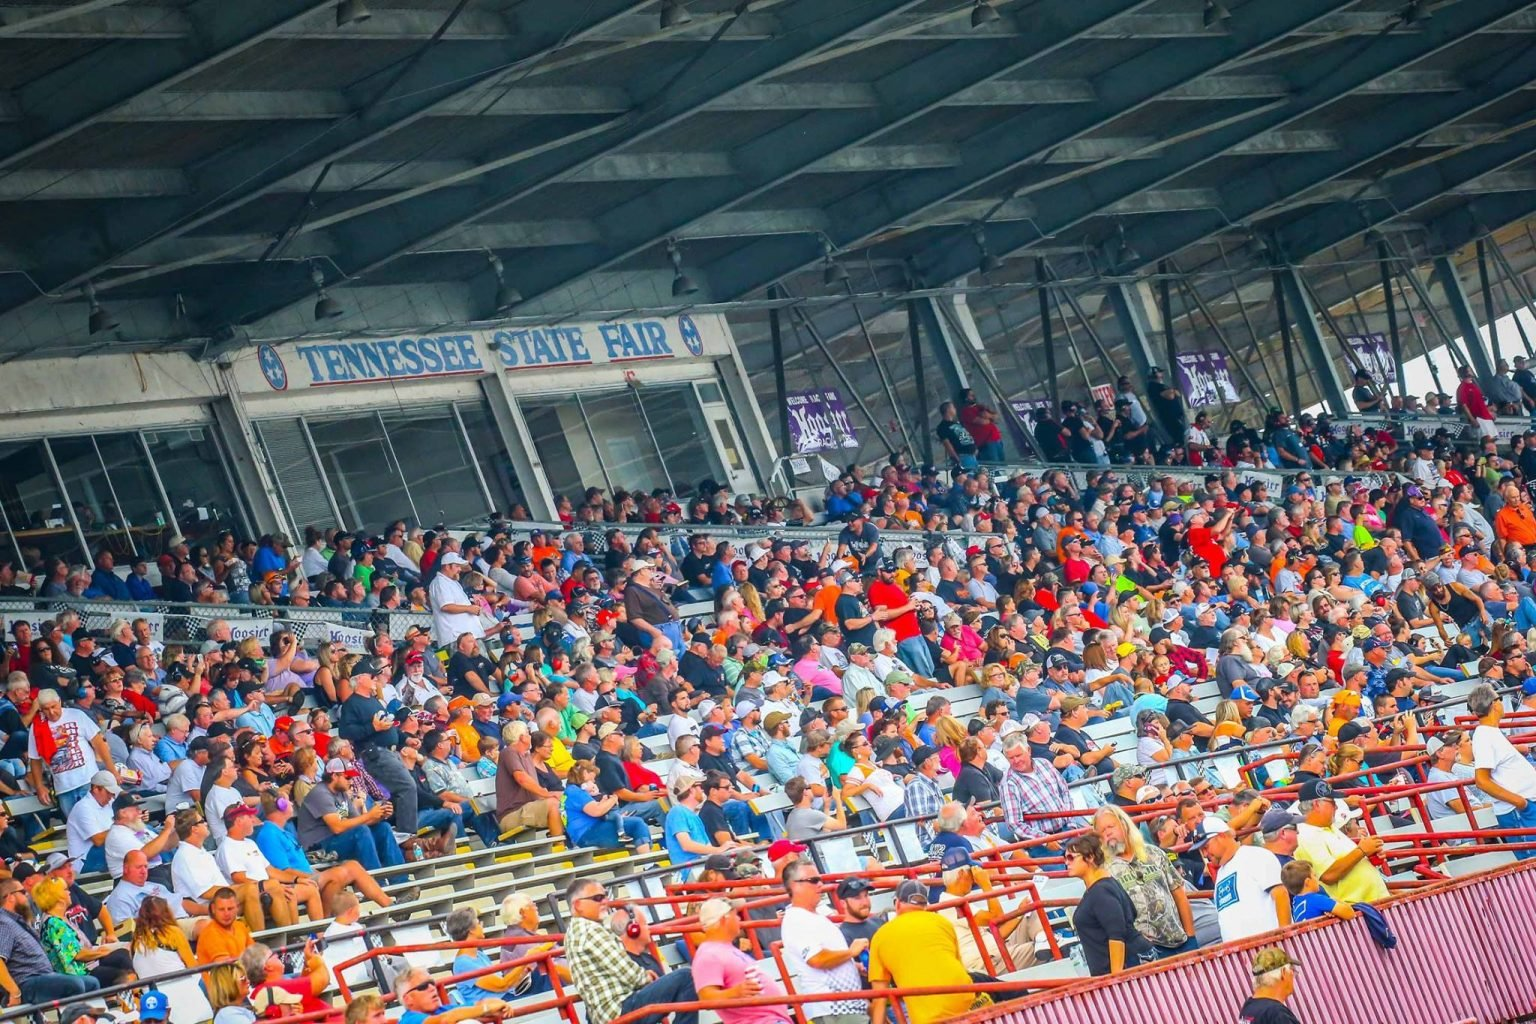 Nashville Fair Board claims breach of contract with Fairgrounds Speedway; Track responds